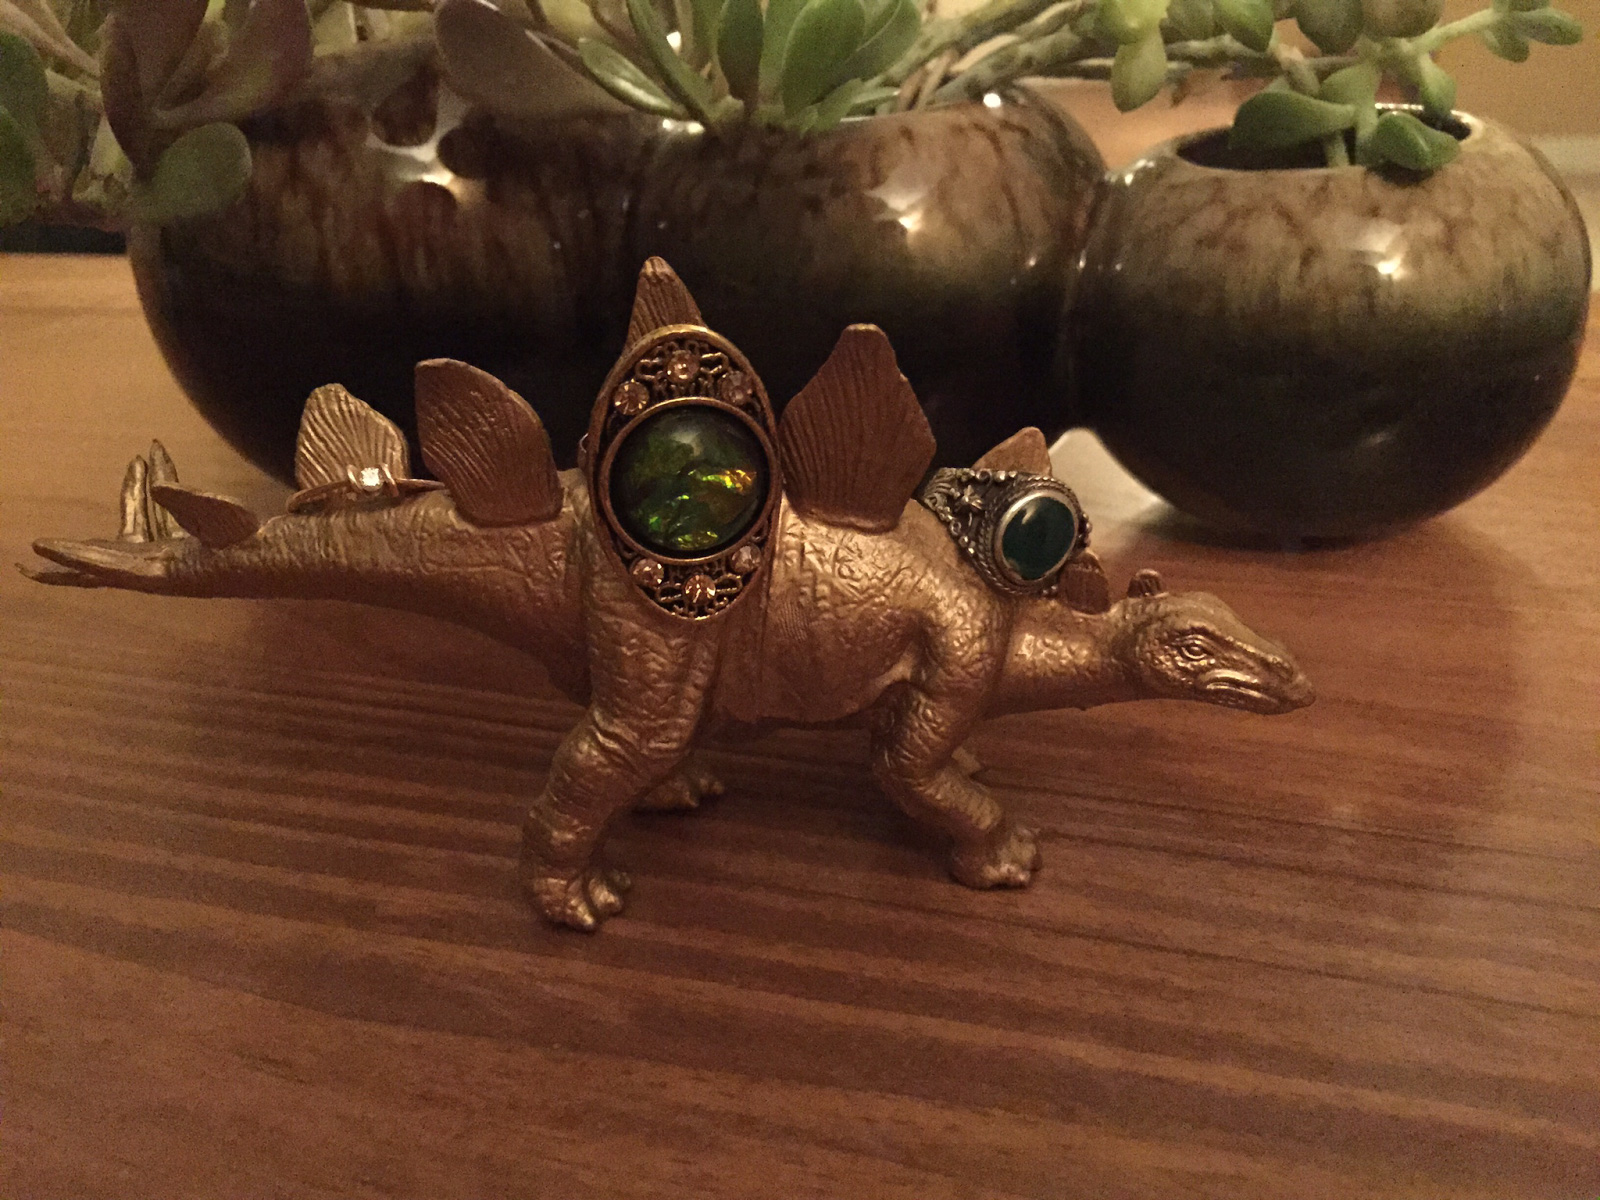 A bronze dinosaur as a creative jewelry holder for rings.